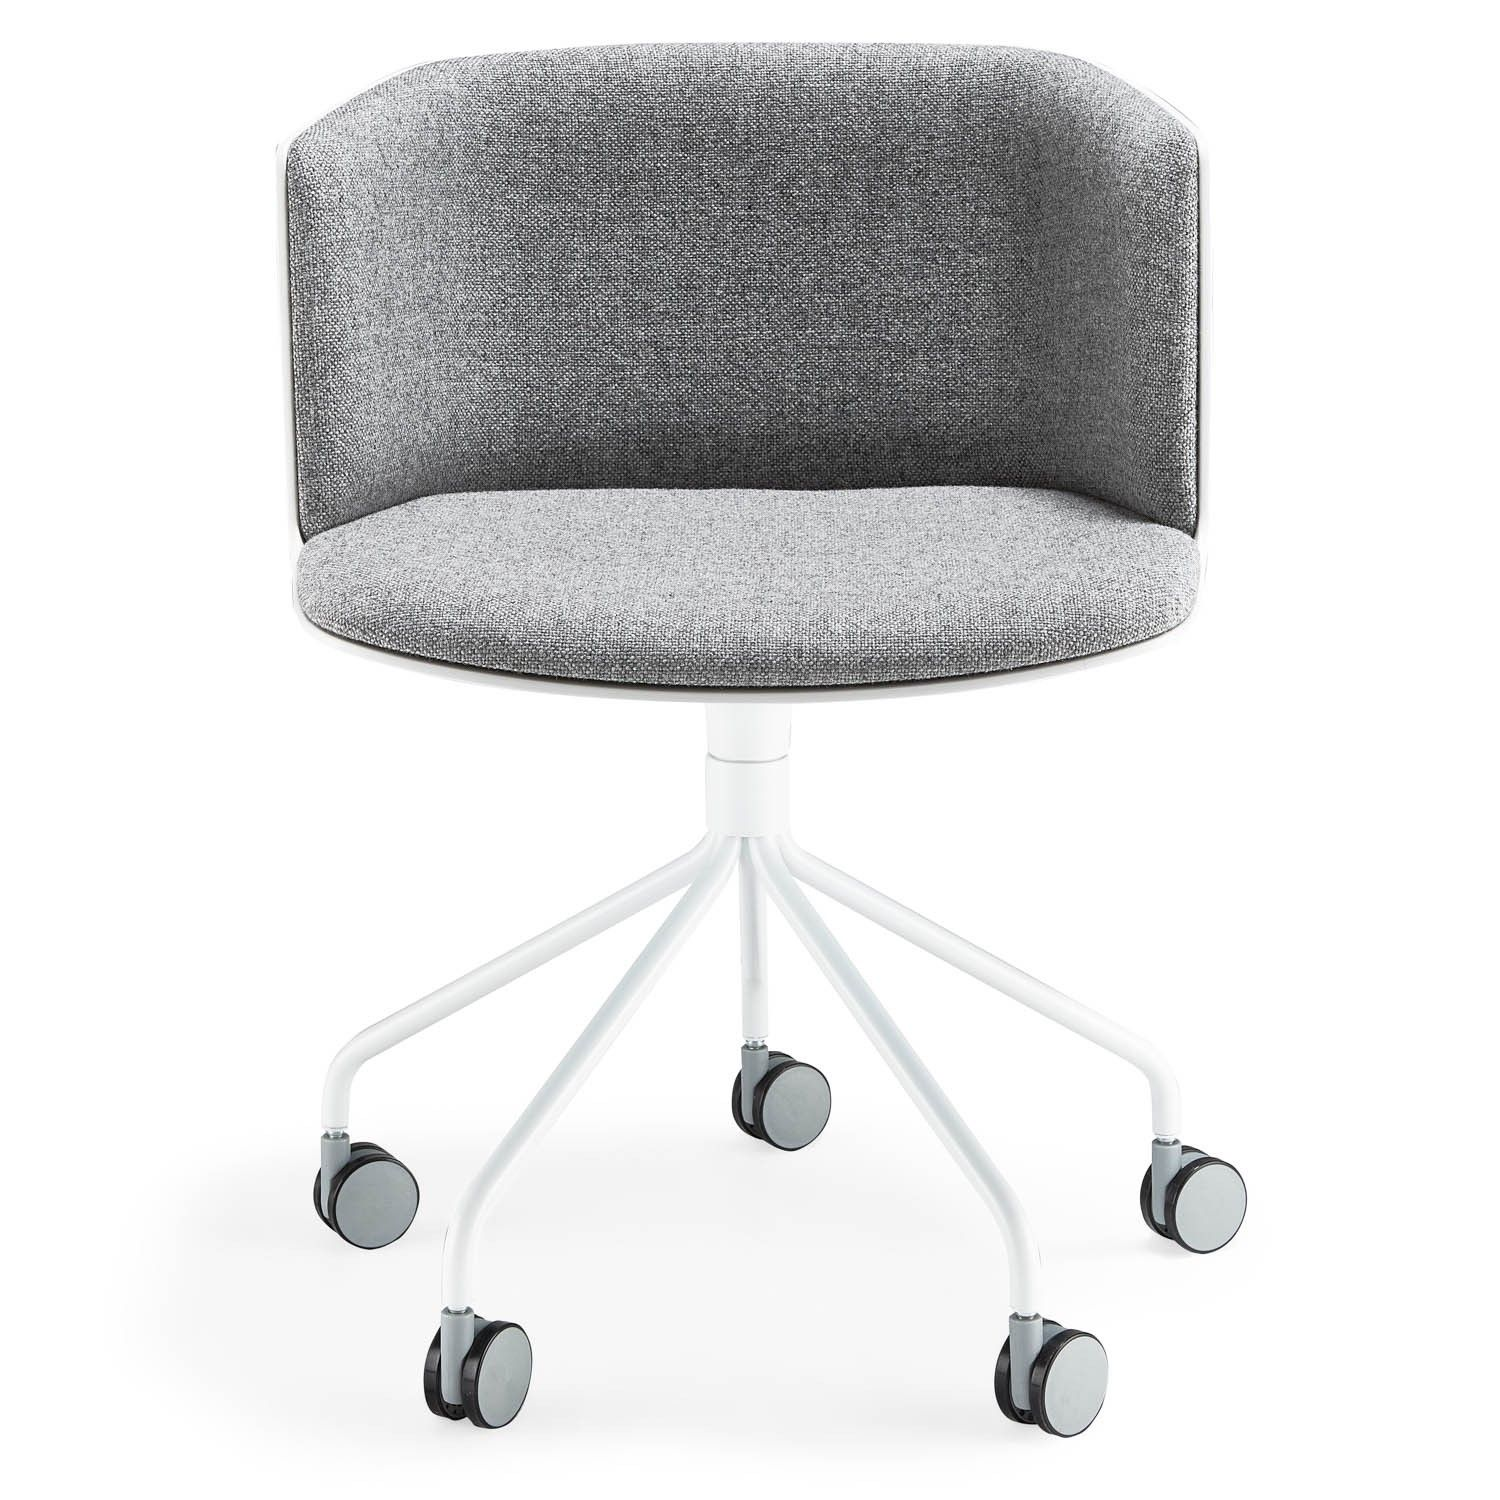 Comfy Office Chairs Costco For Office Furniture Ideas: Grey Office